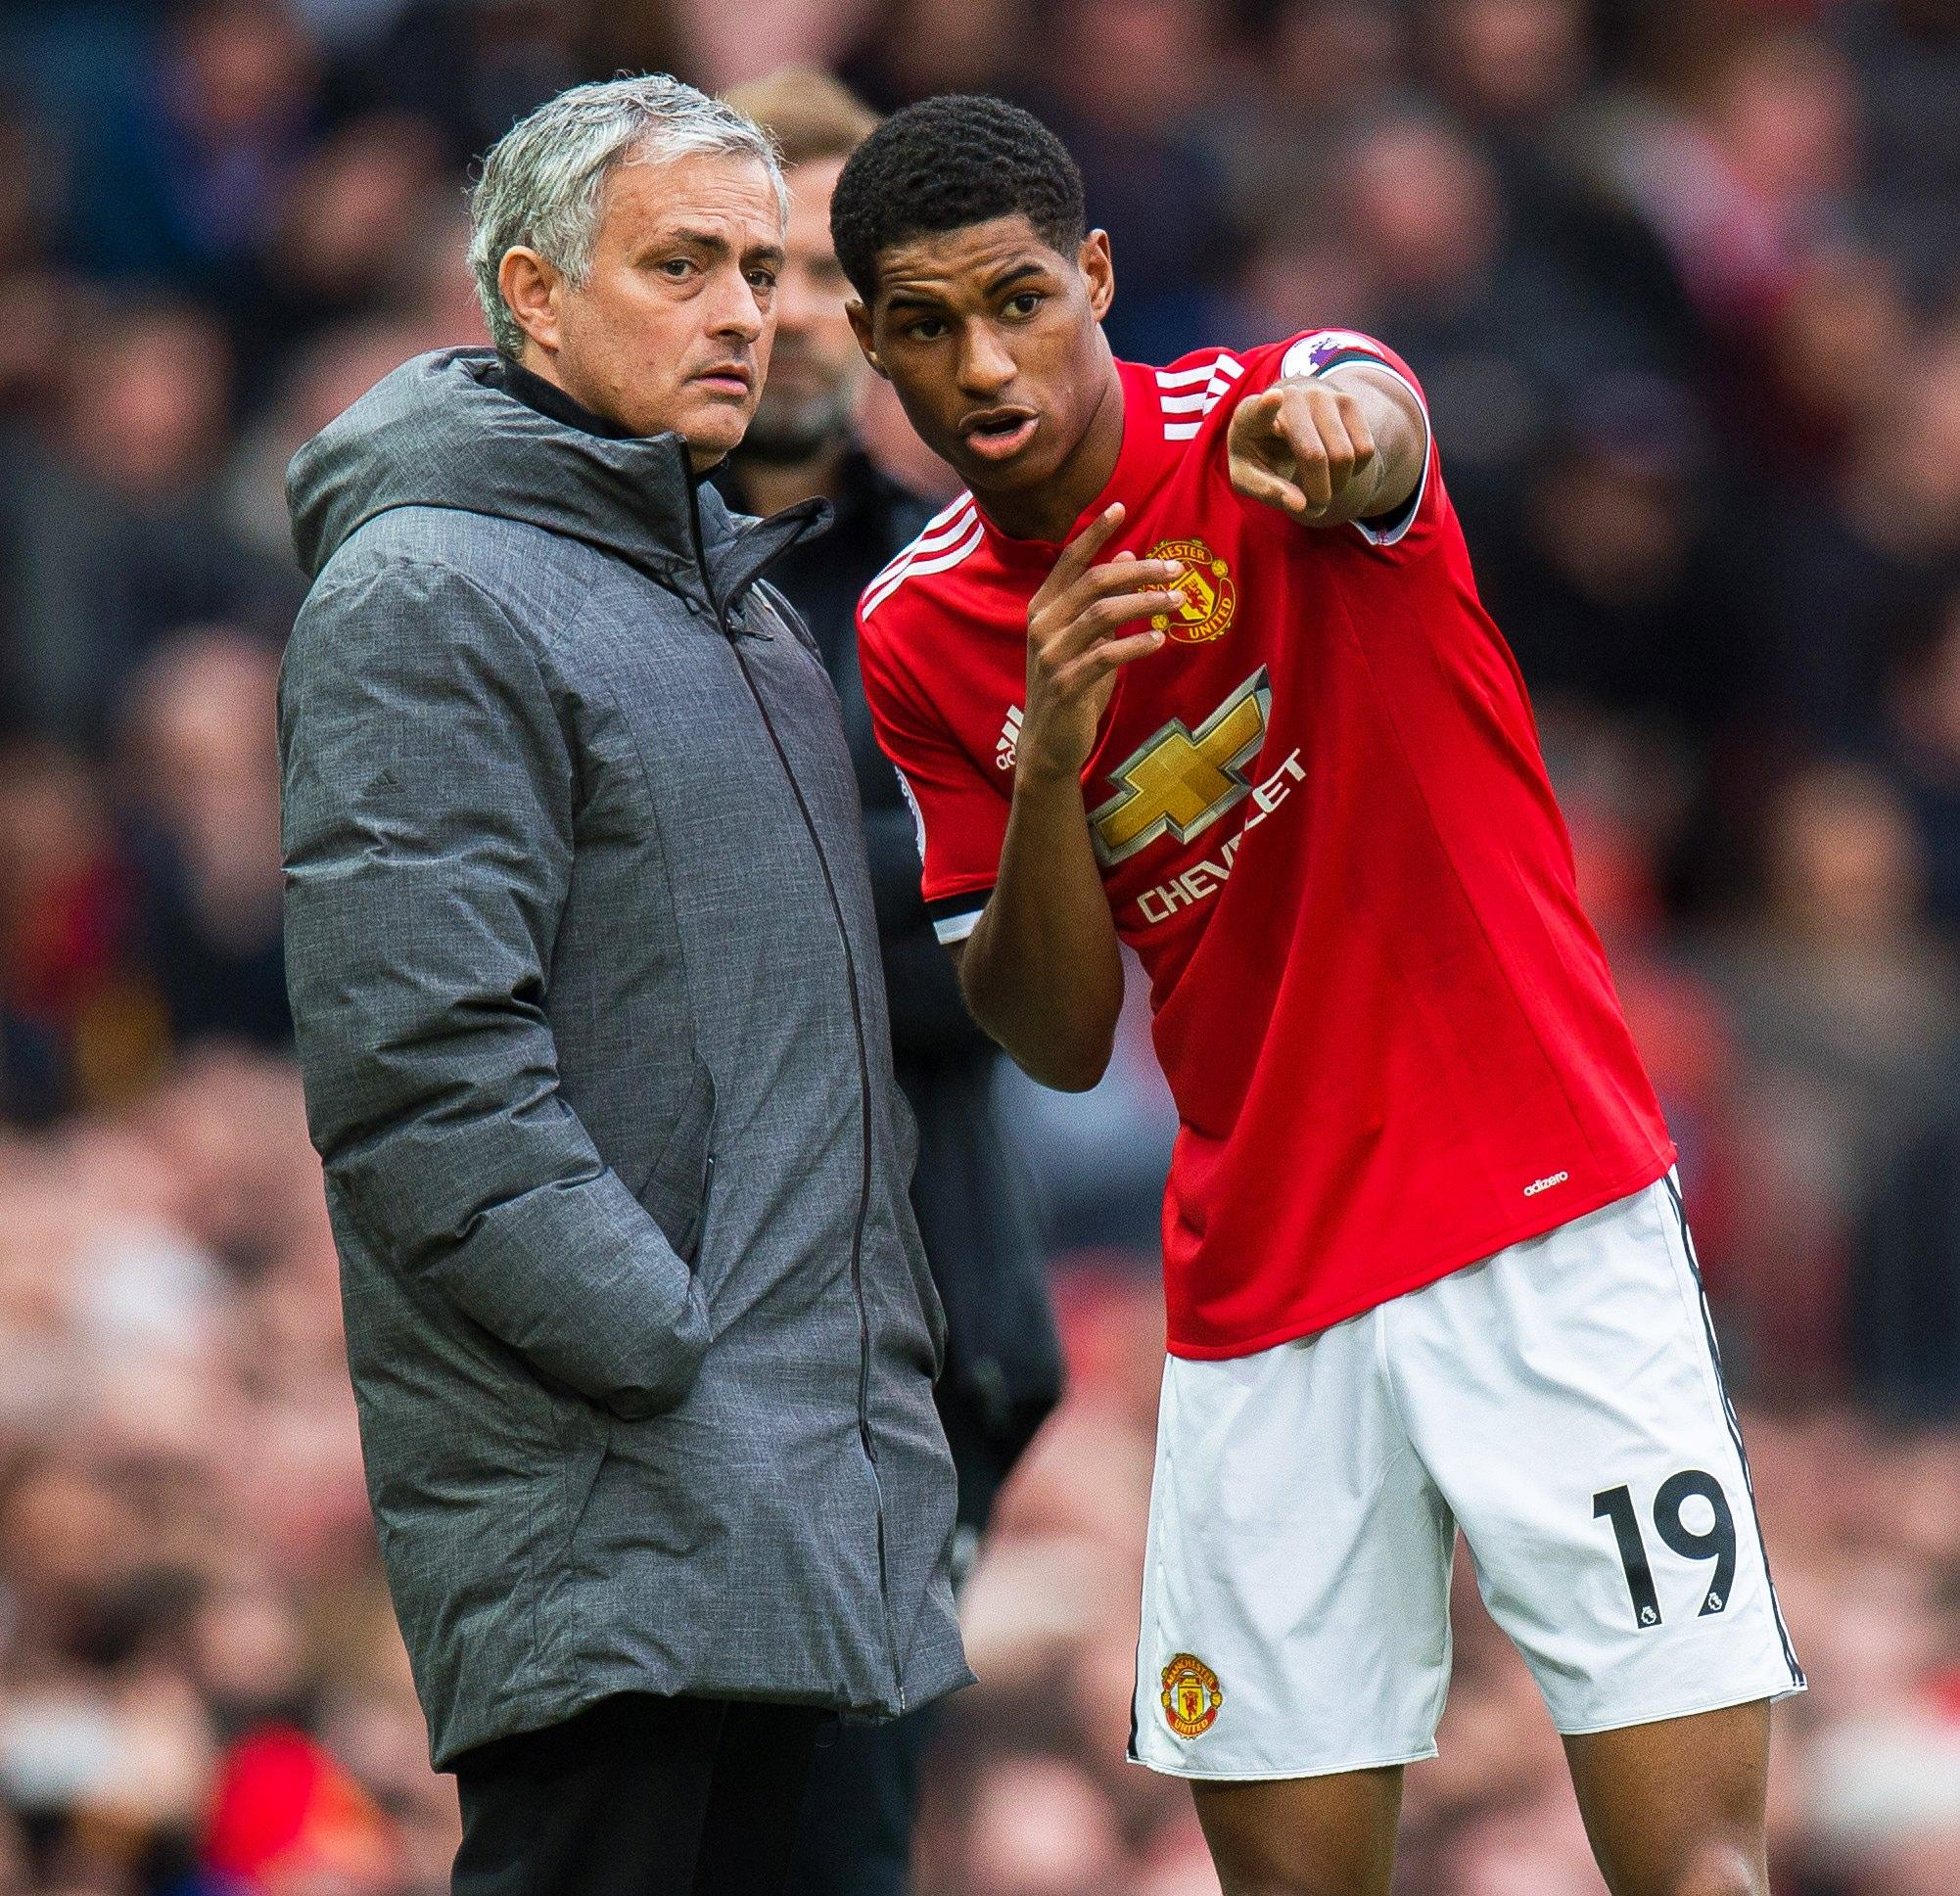 It has been claimed Marcus Rashford is considering leaving United if Jose Mourinho remains as boss